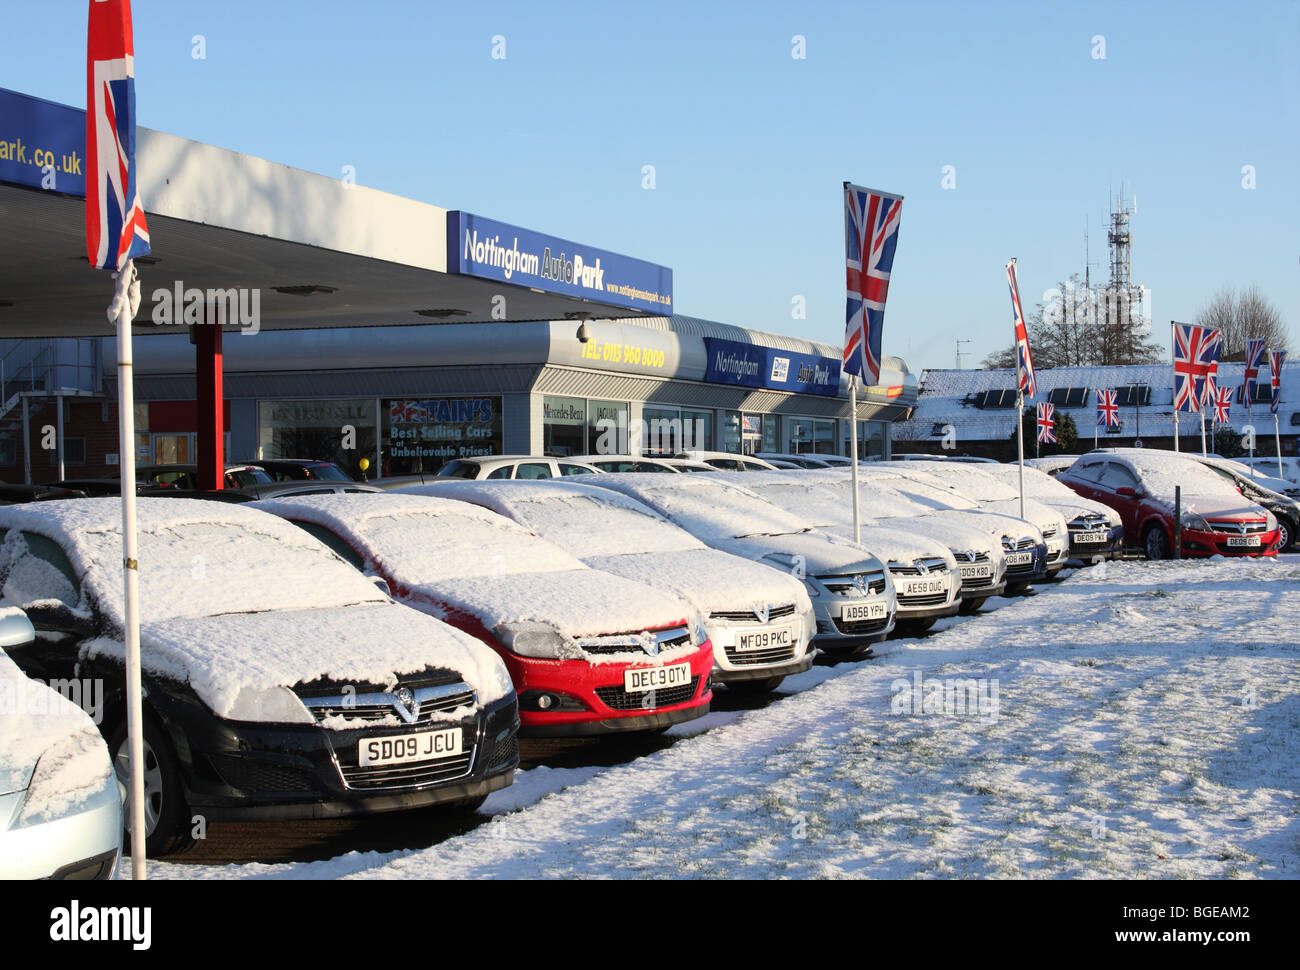 Snow covered cars for sale at a car dealership in a U.K. city. - Stock Image